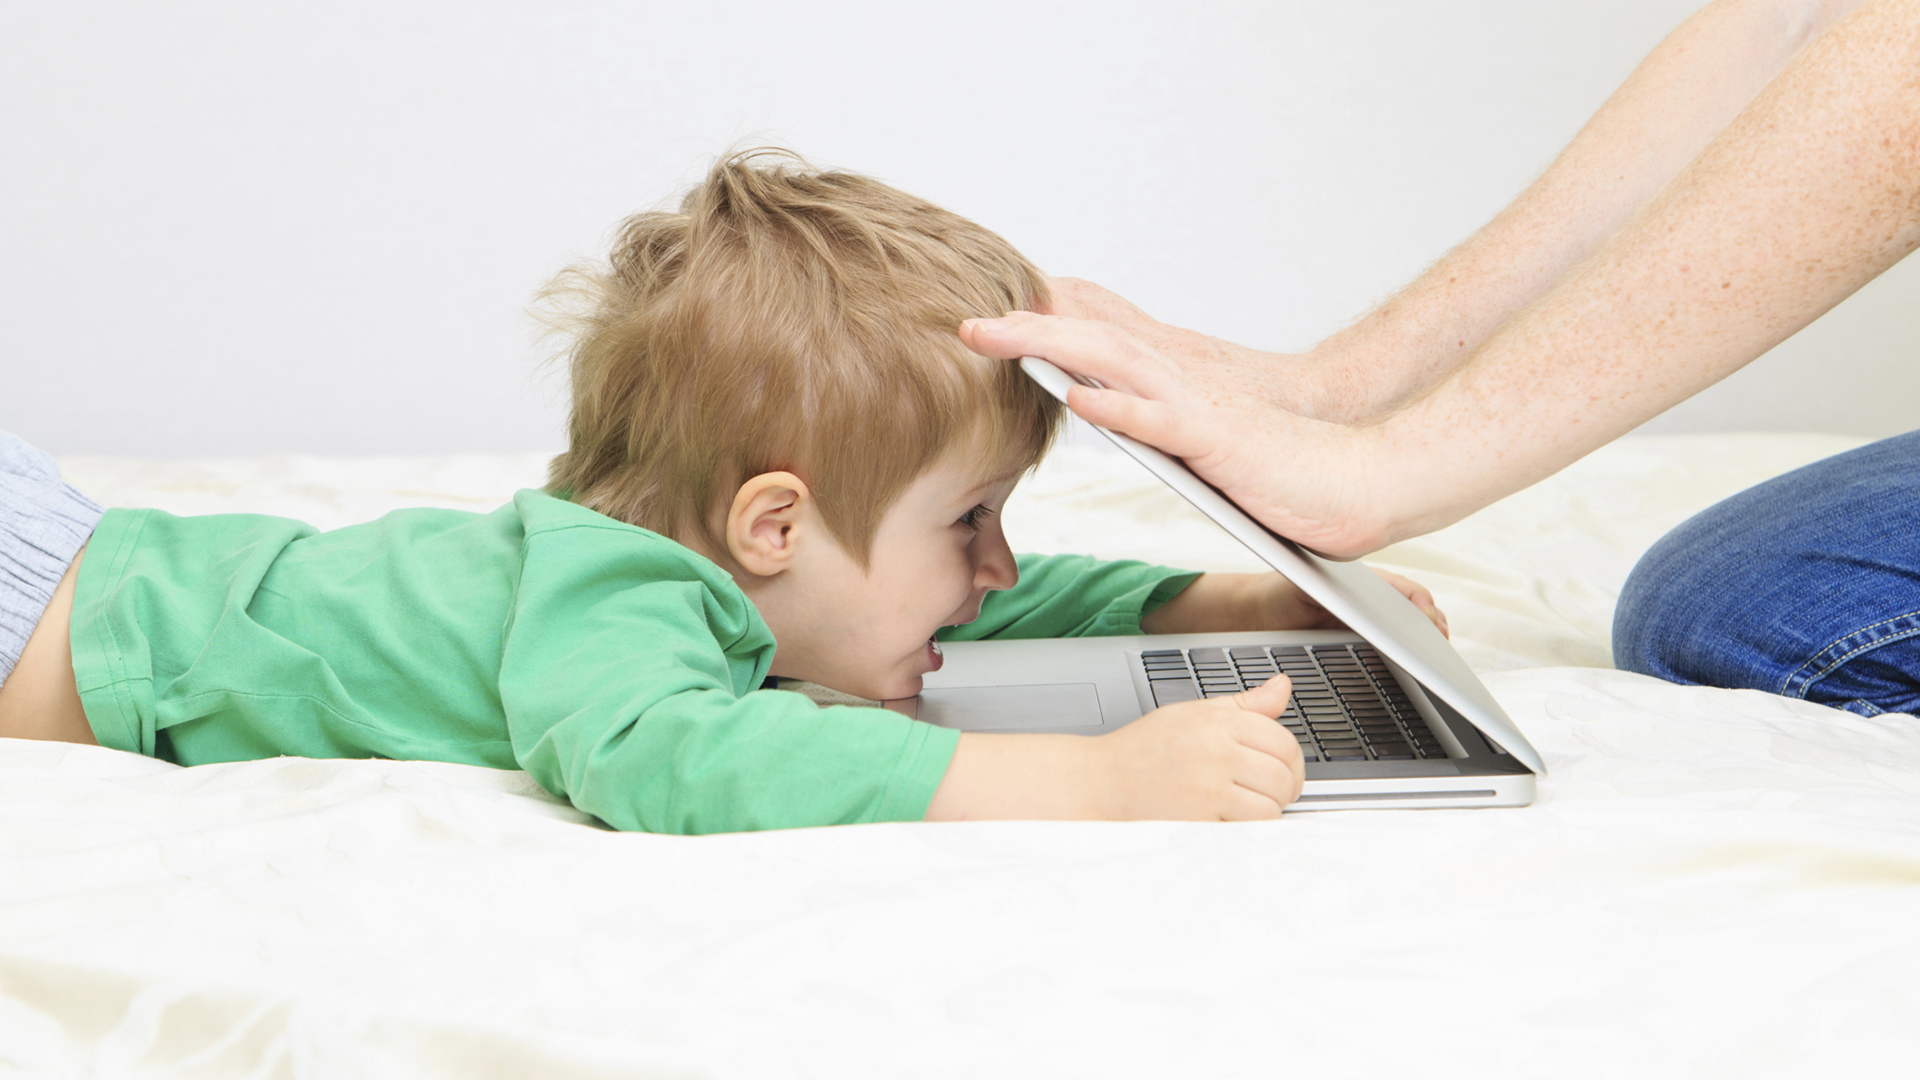 Child addicted to computer | Sheknows.com